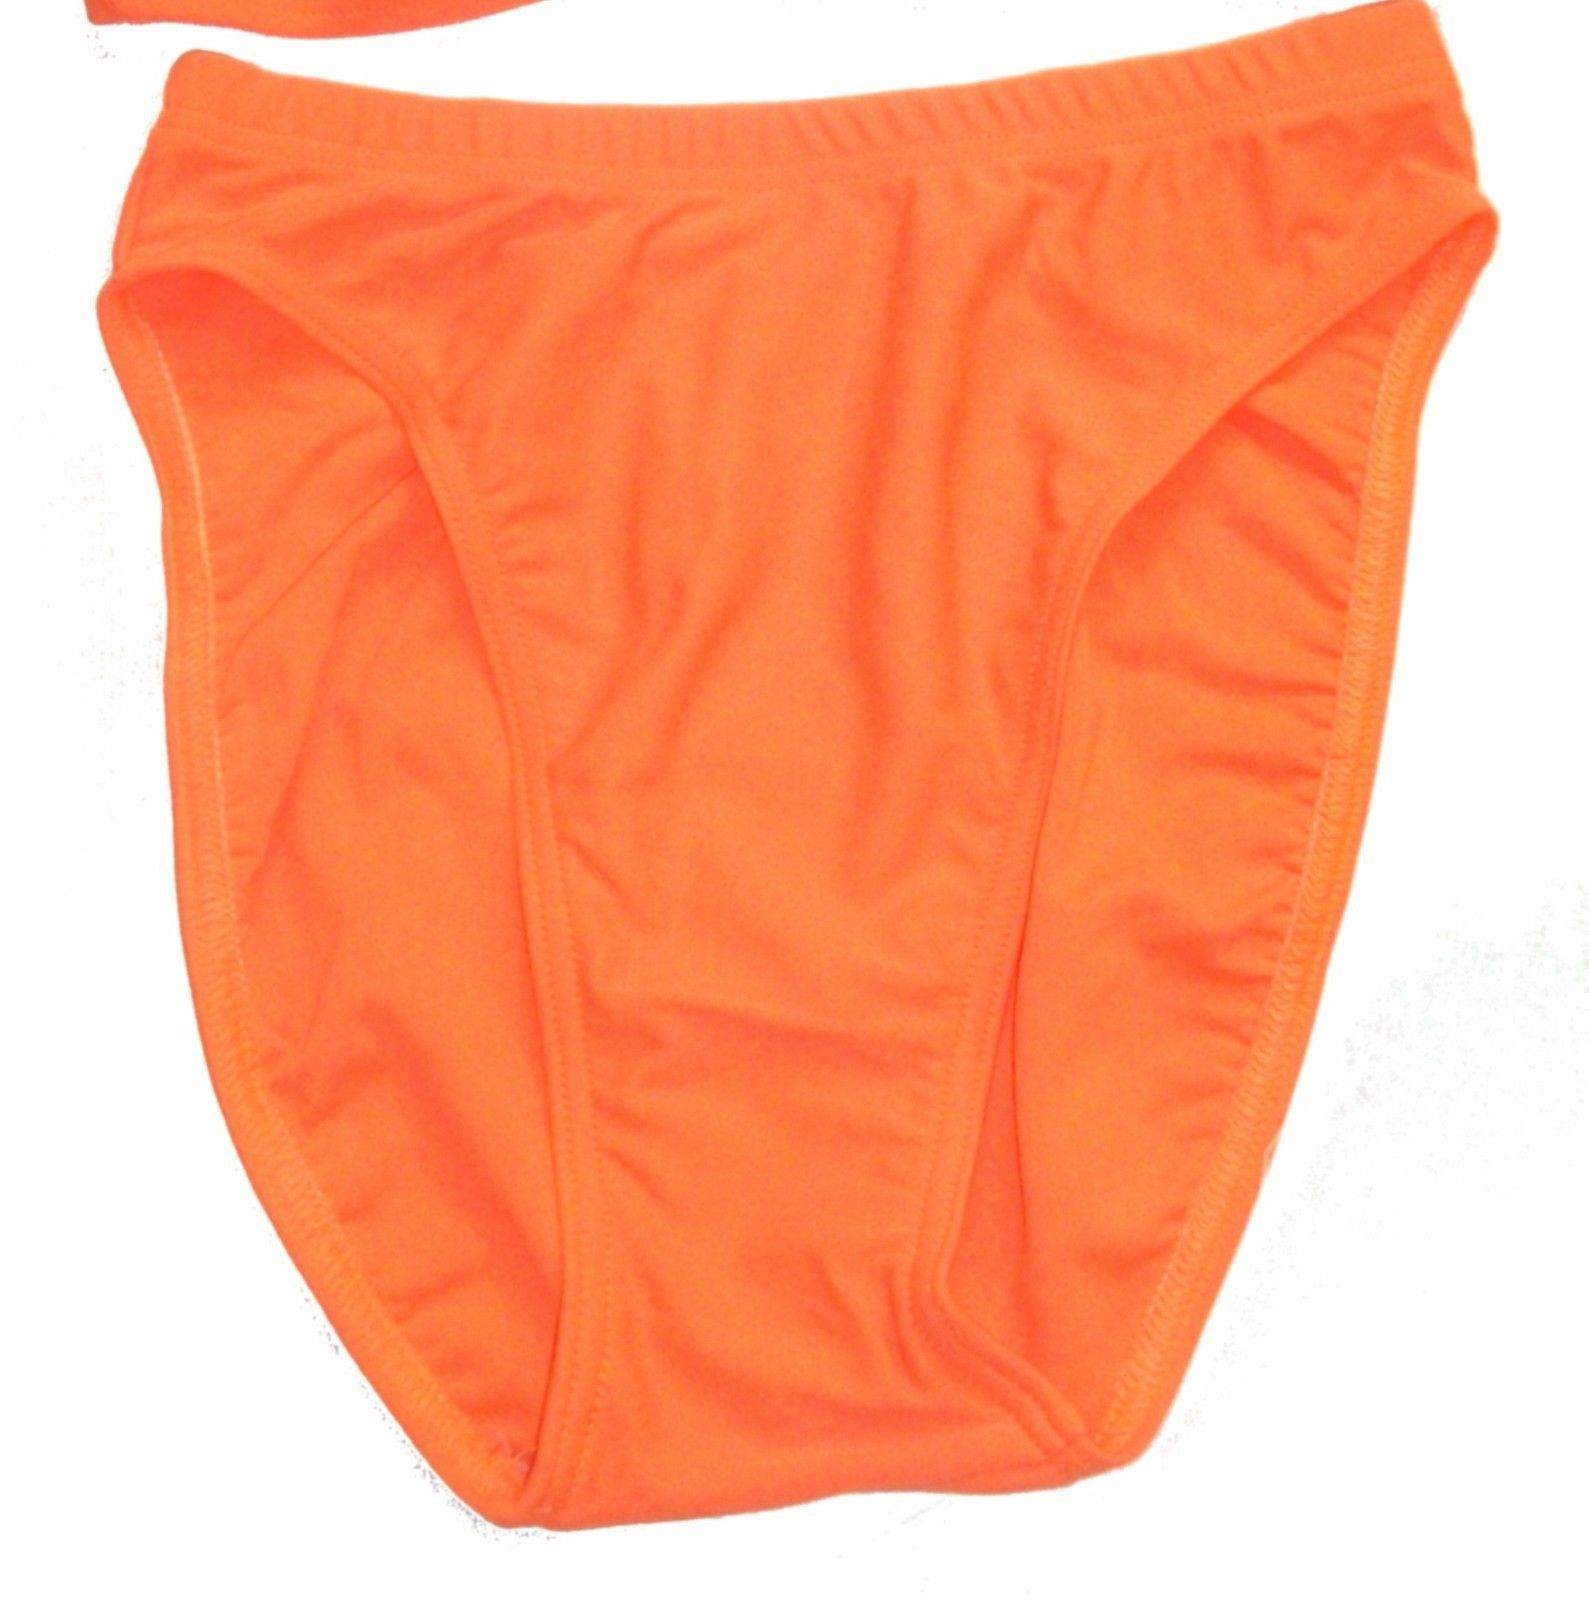 Christina Bikini Swimsuit Tops and Swimsuit Bottoms Separates Jrs Size 8 to14